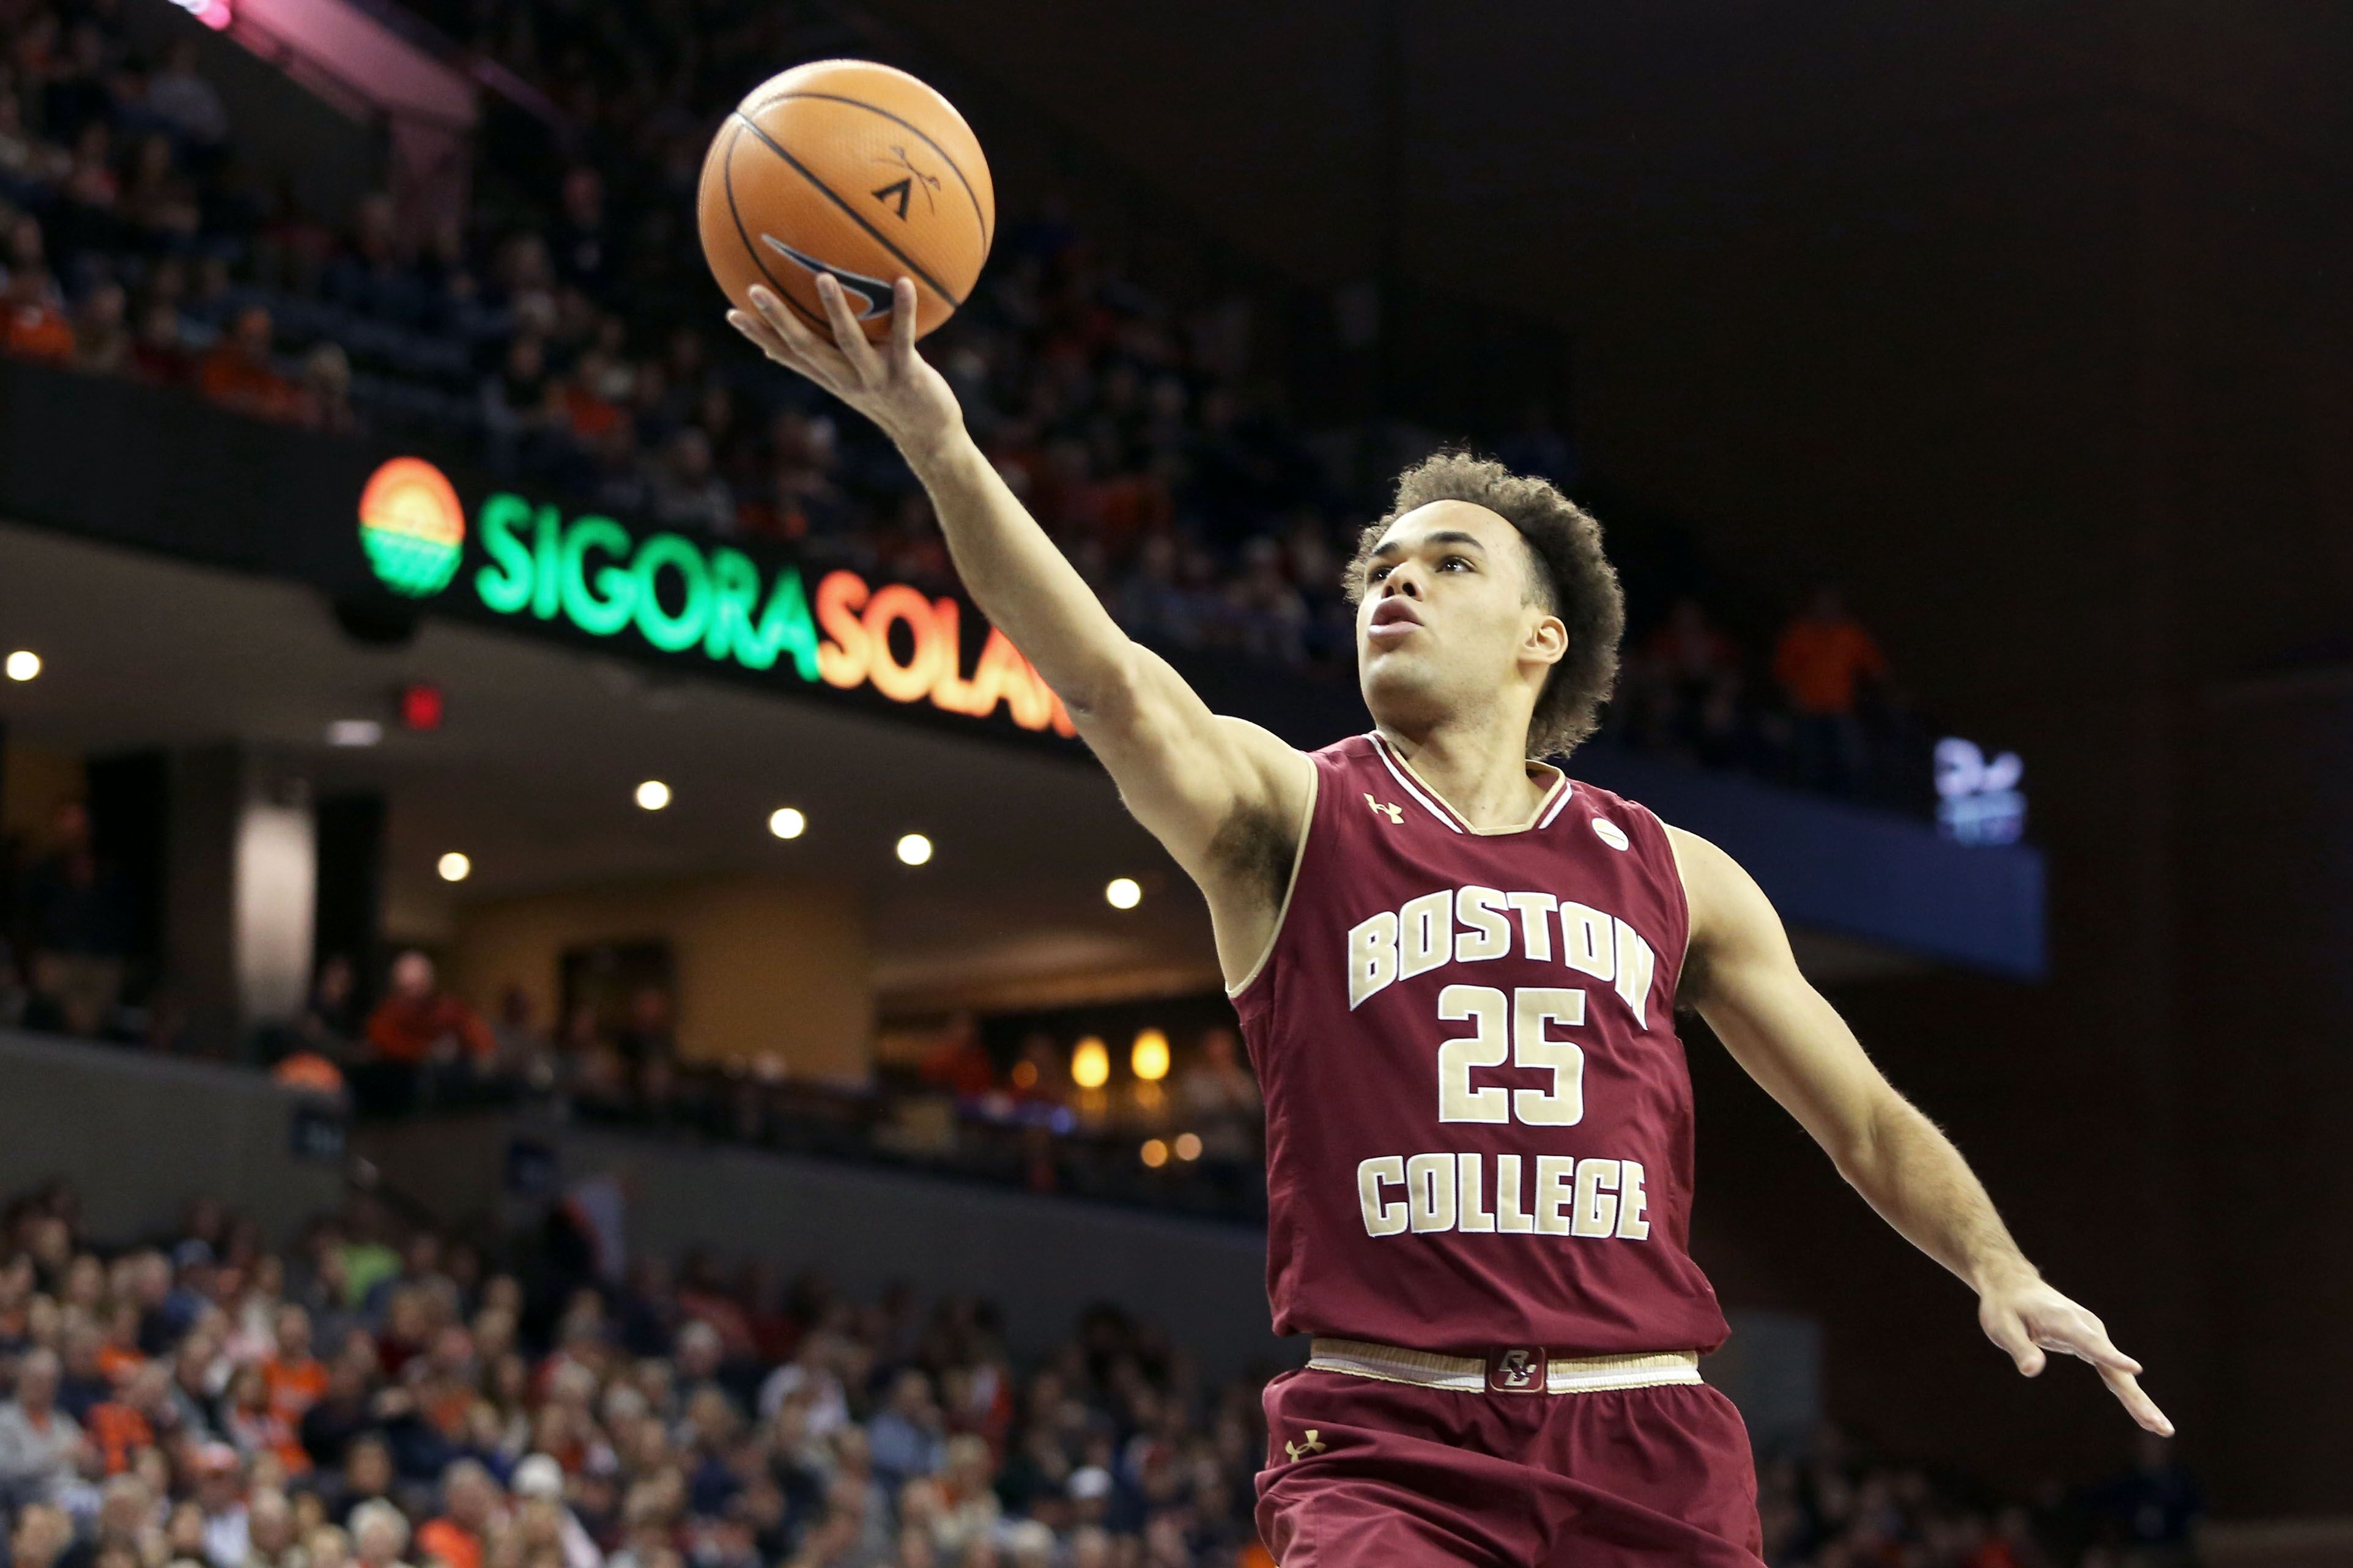 Boston College Basketball: Early look at Golden Eagles 2019 recruiting class